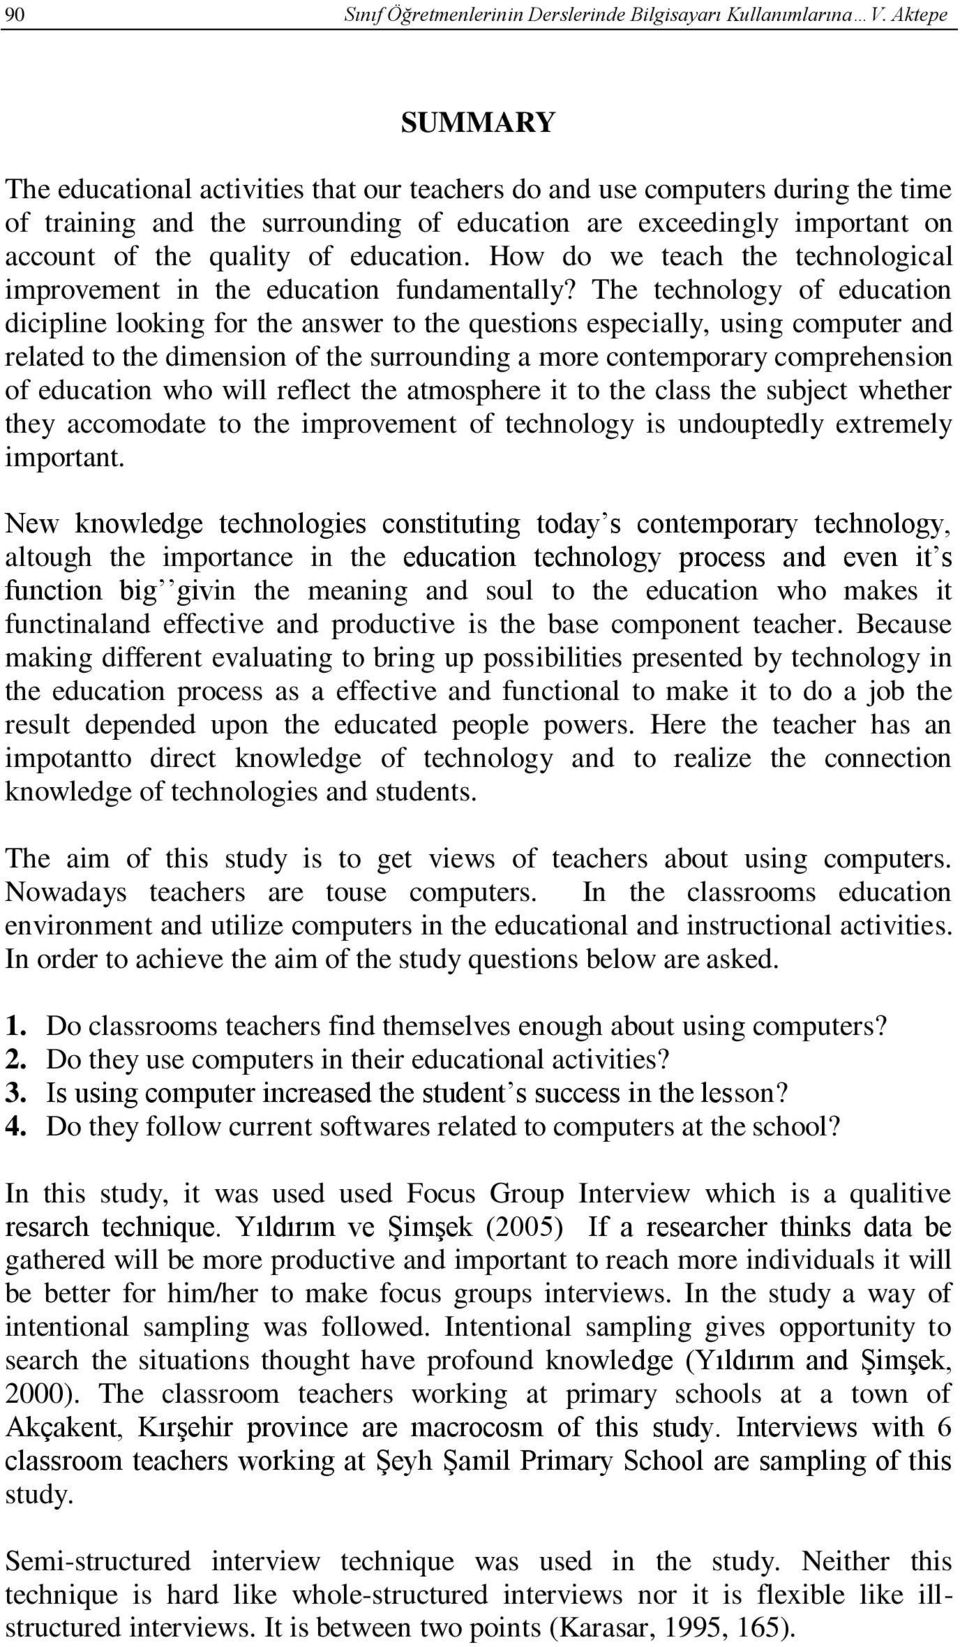 education. How do we teach the technological improvement in the education fundamentally?